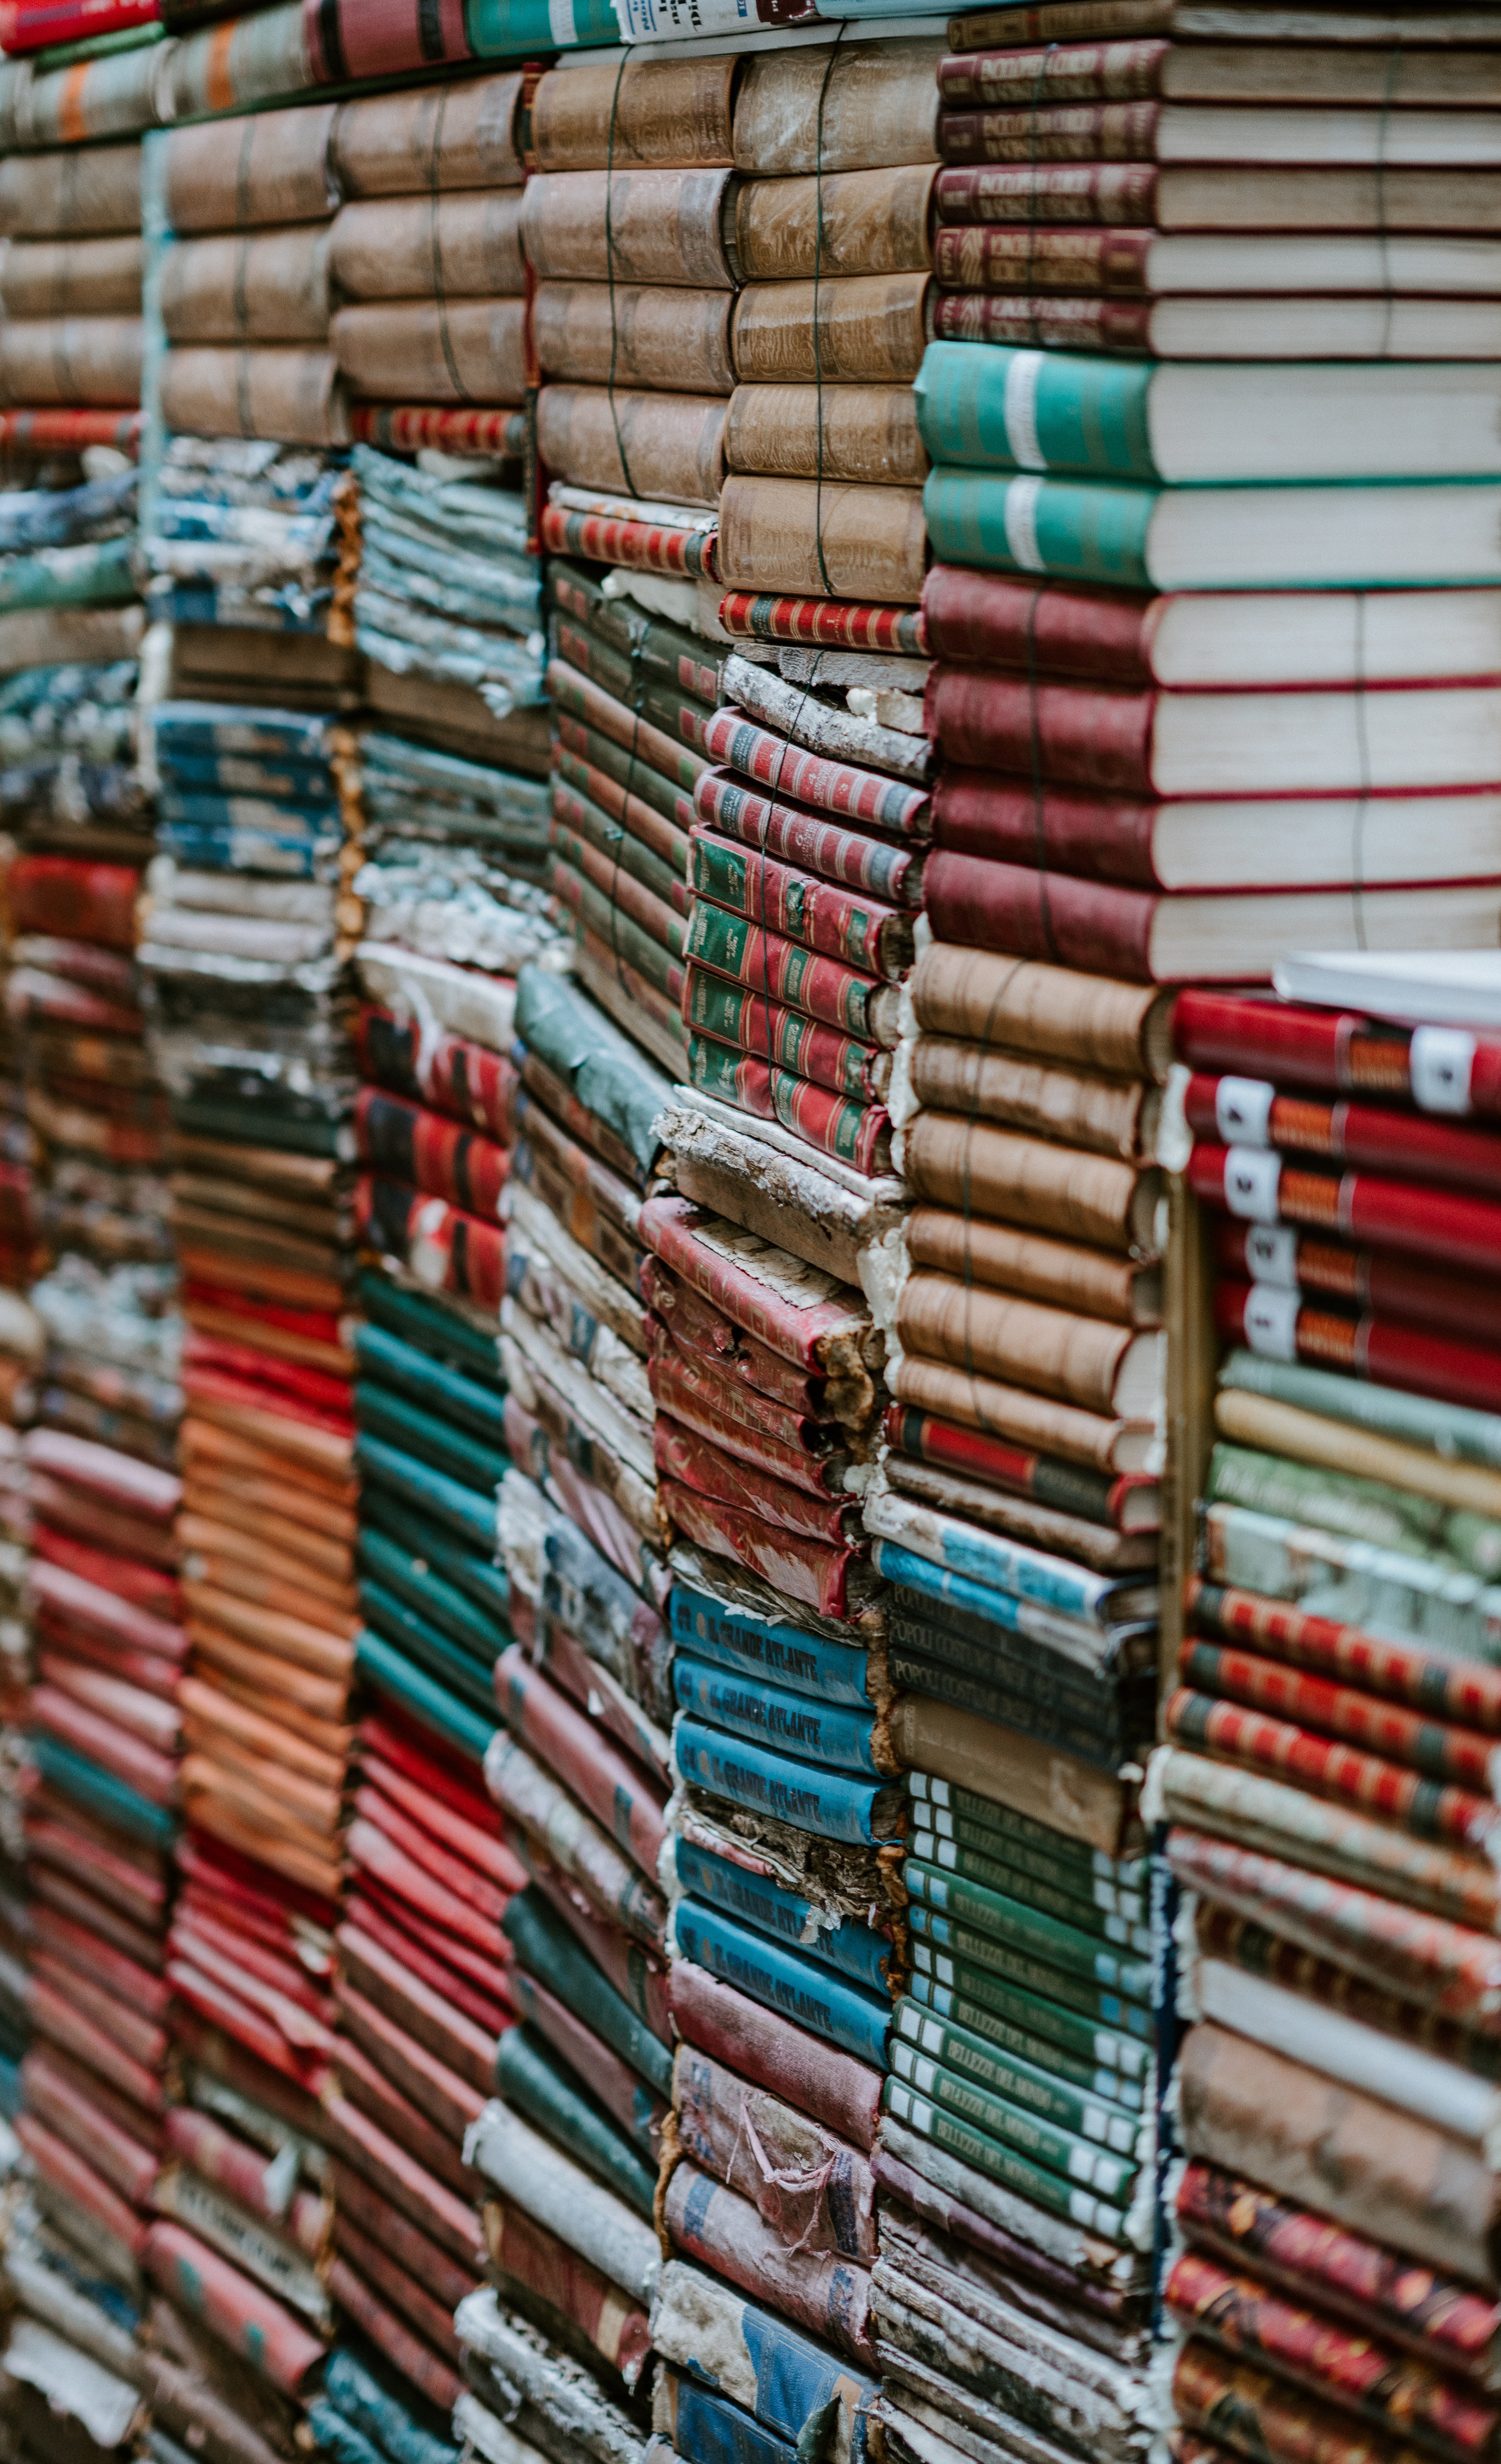 Books neatly stacked with spines horizontal